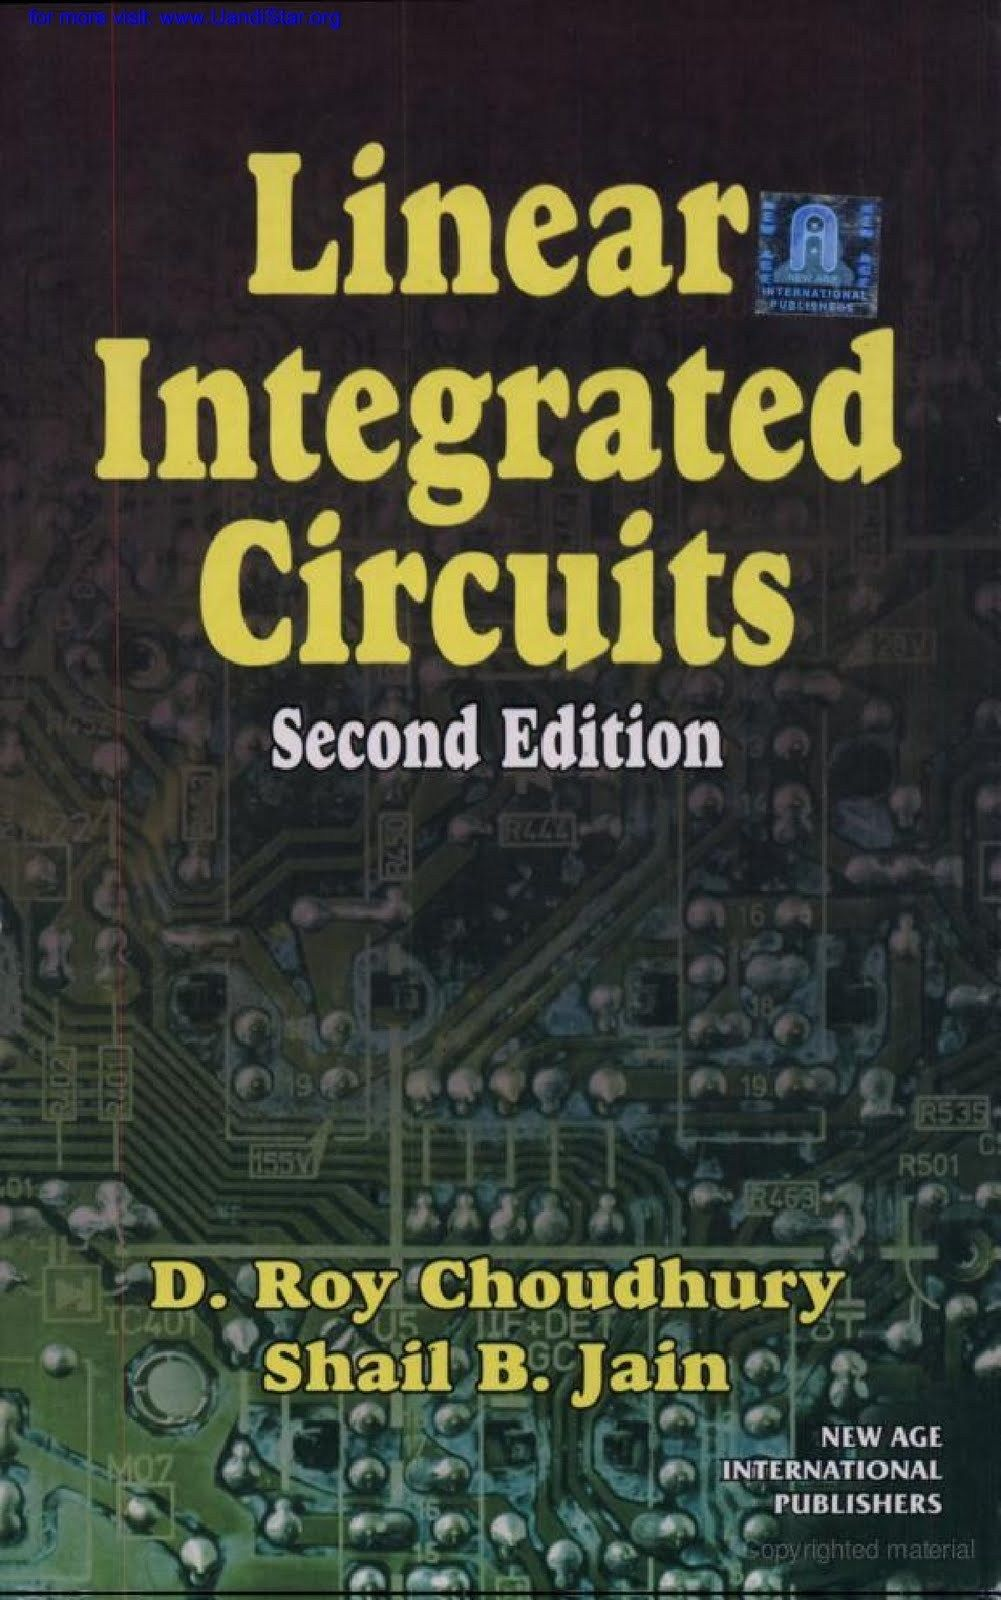 Linear integrated circuits by roy choudhary pdf circuits linear integrated circuits by roy choudhary pdf lica by roy choudhary lica by roy fandeluxe Choice Image